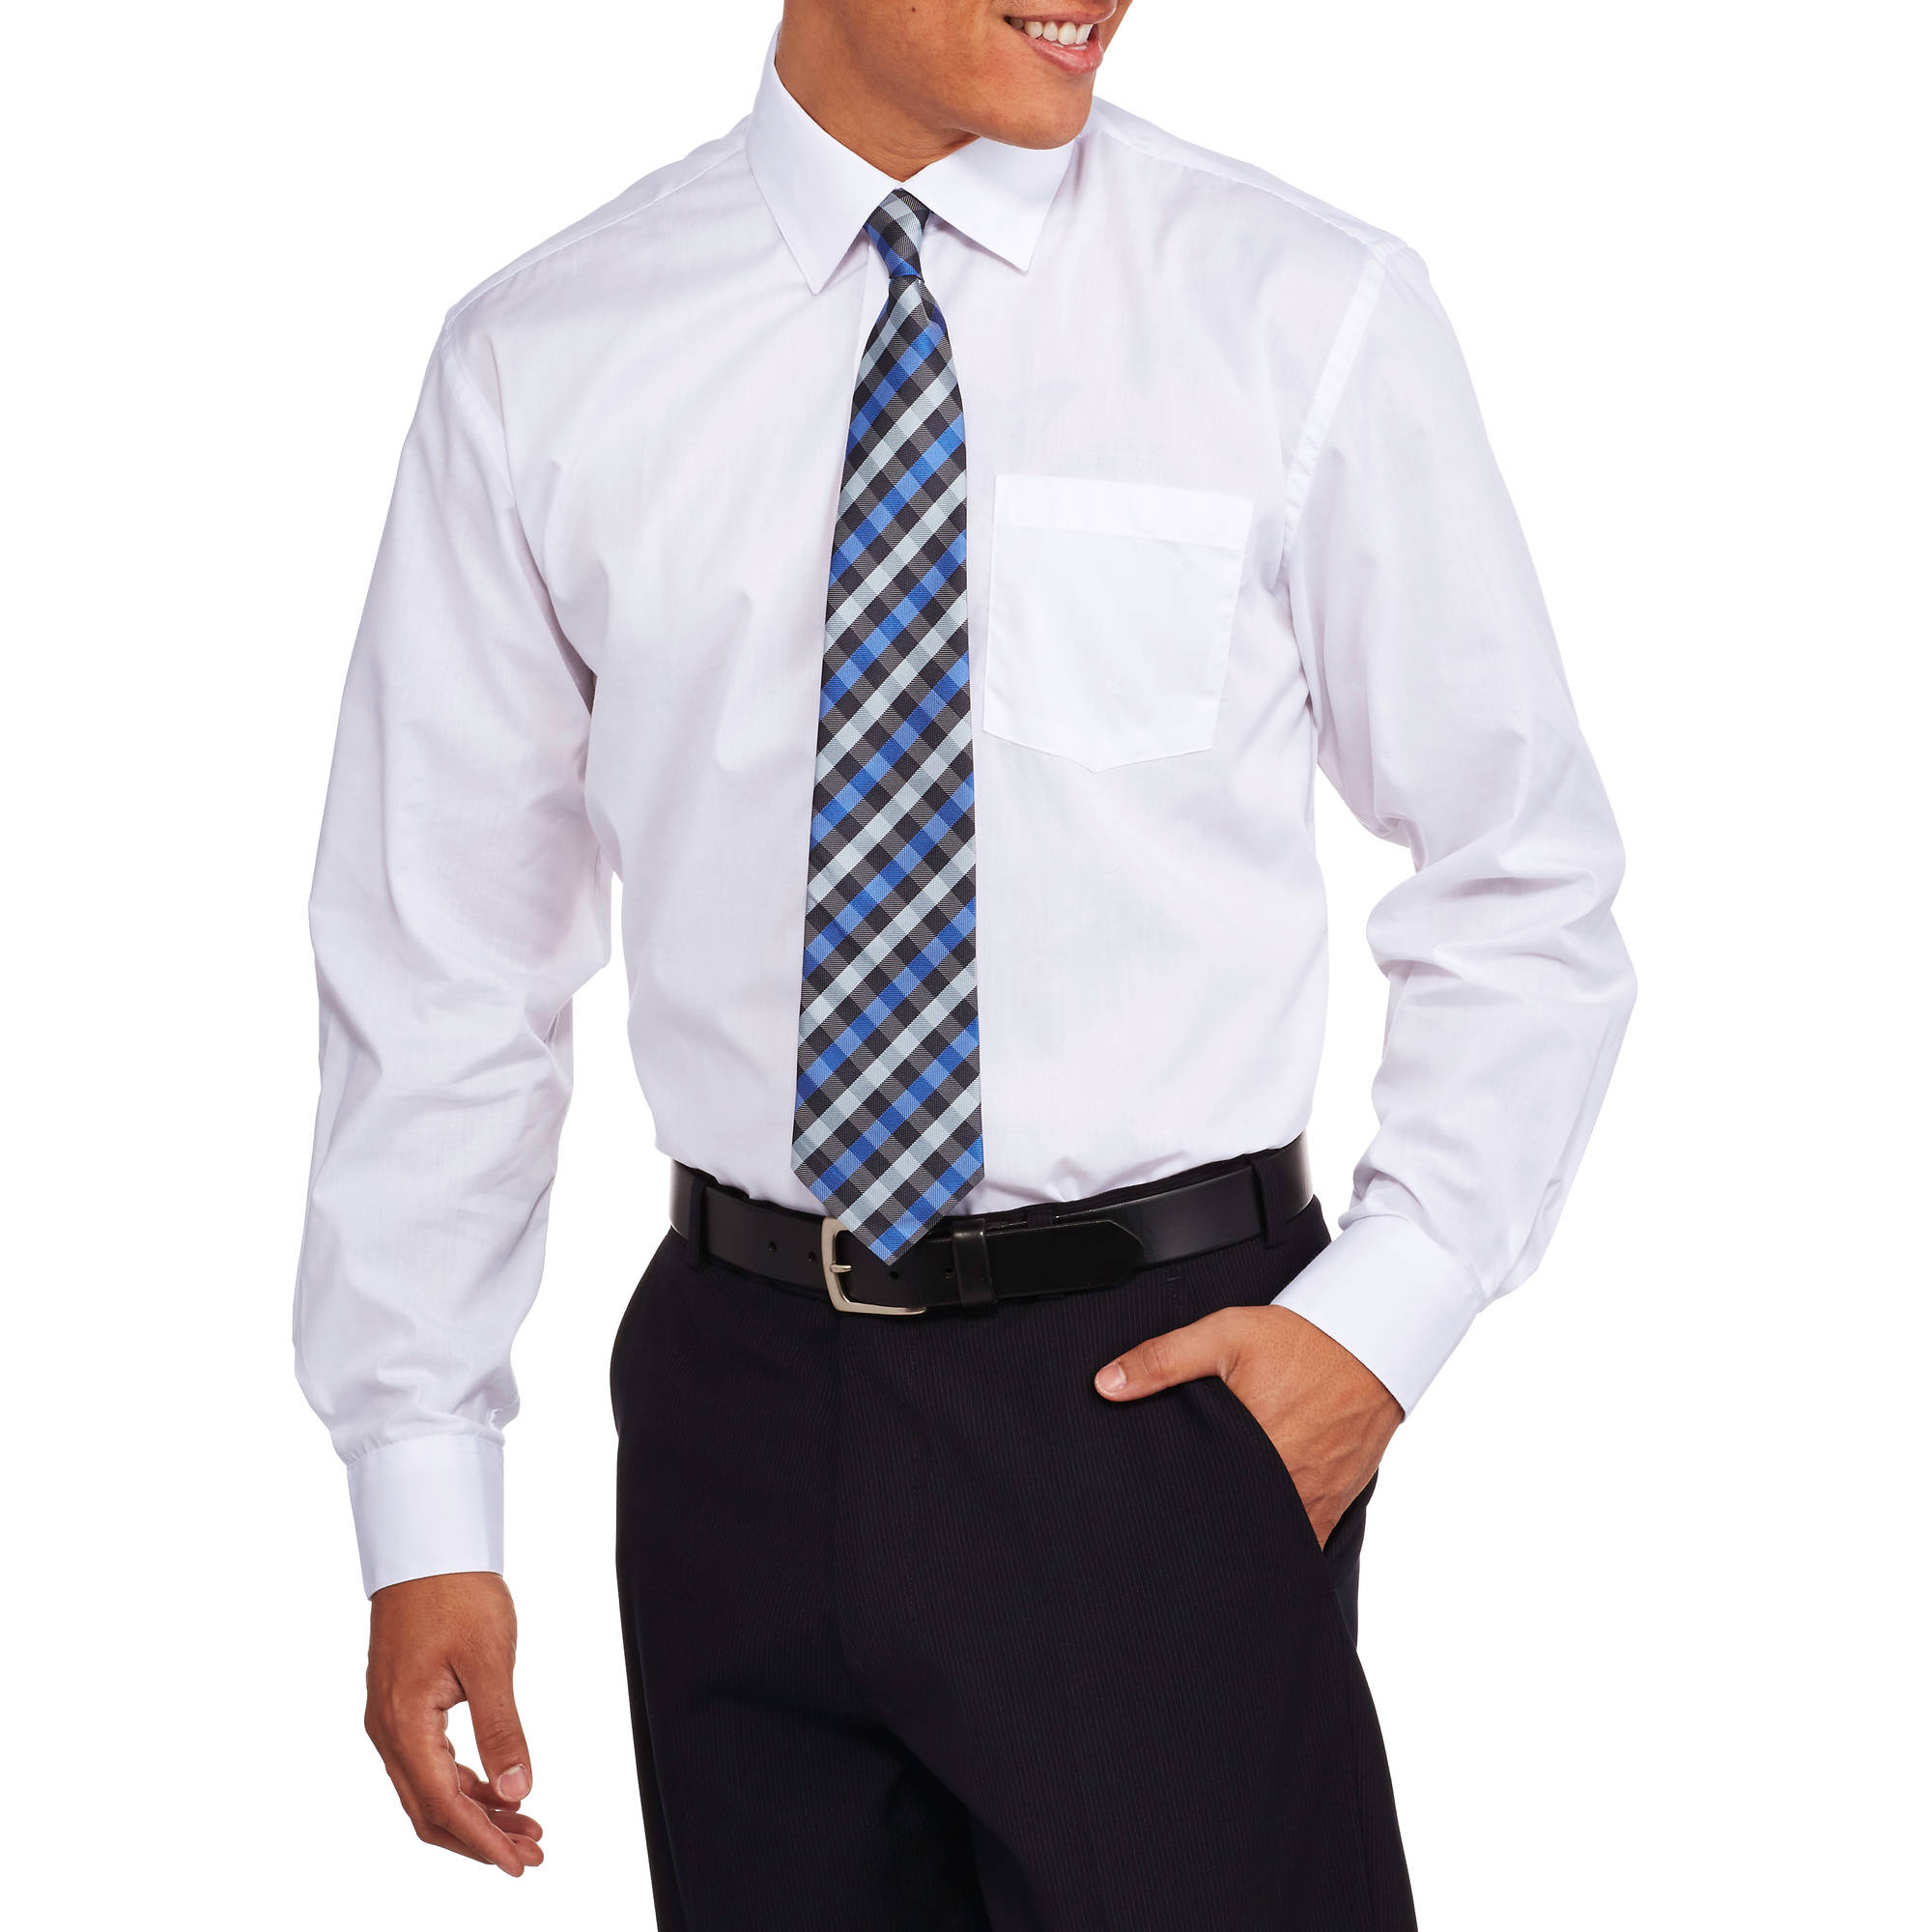 This George Boys' Packaged Dress Shirt and Tie Set is the perfect combo for work or special event. This packaged deal features a long sleeve dress shirt with a clip-on tie/5(24).